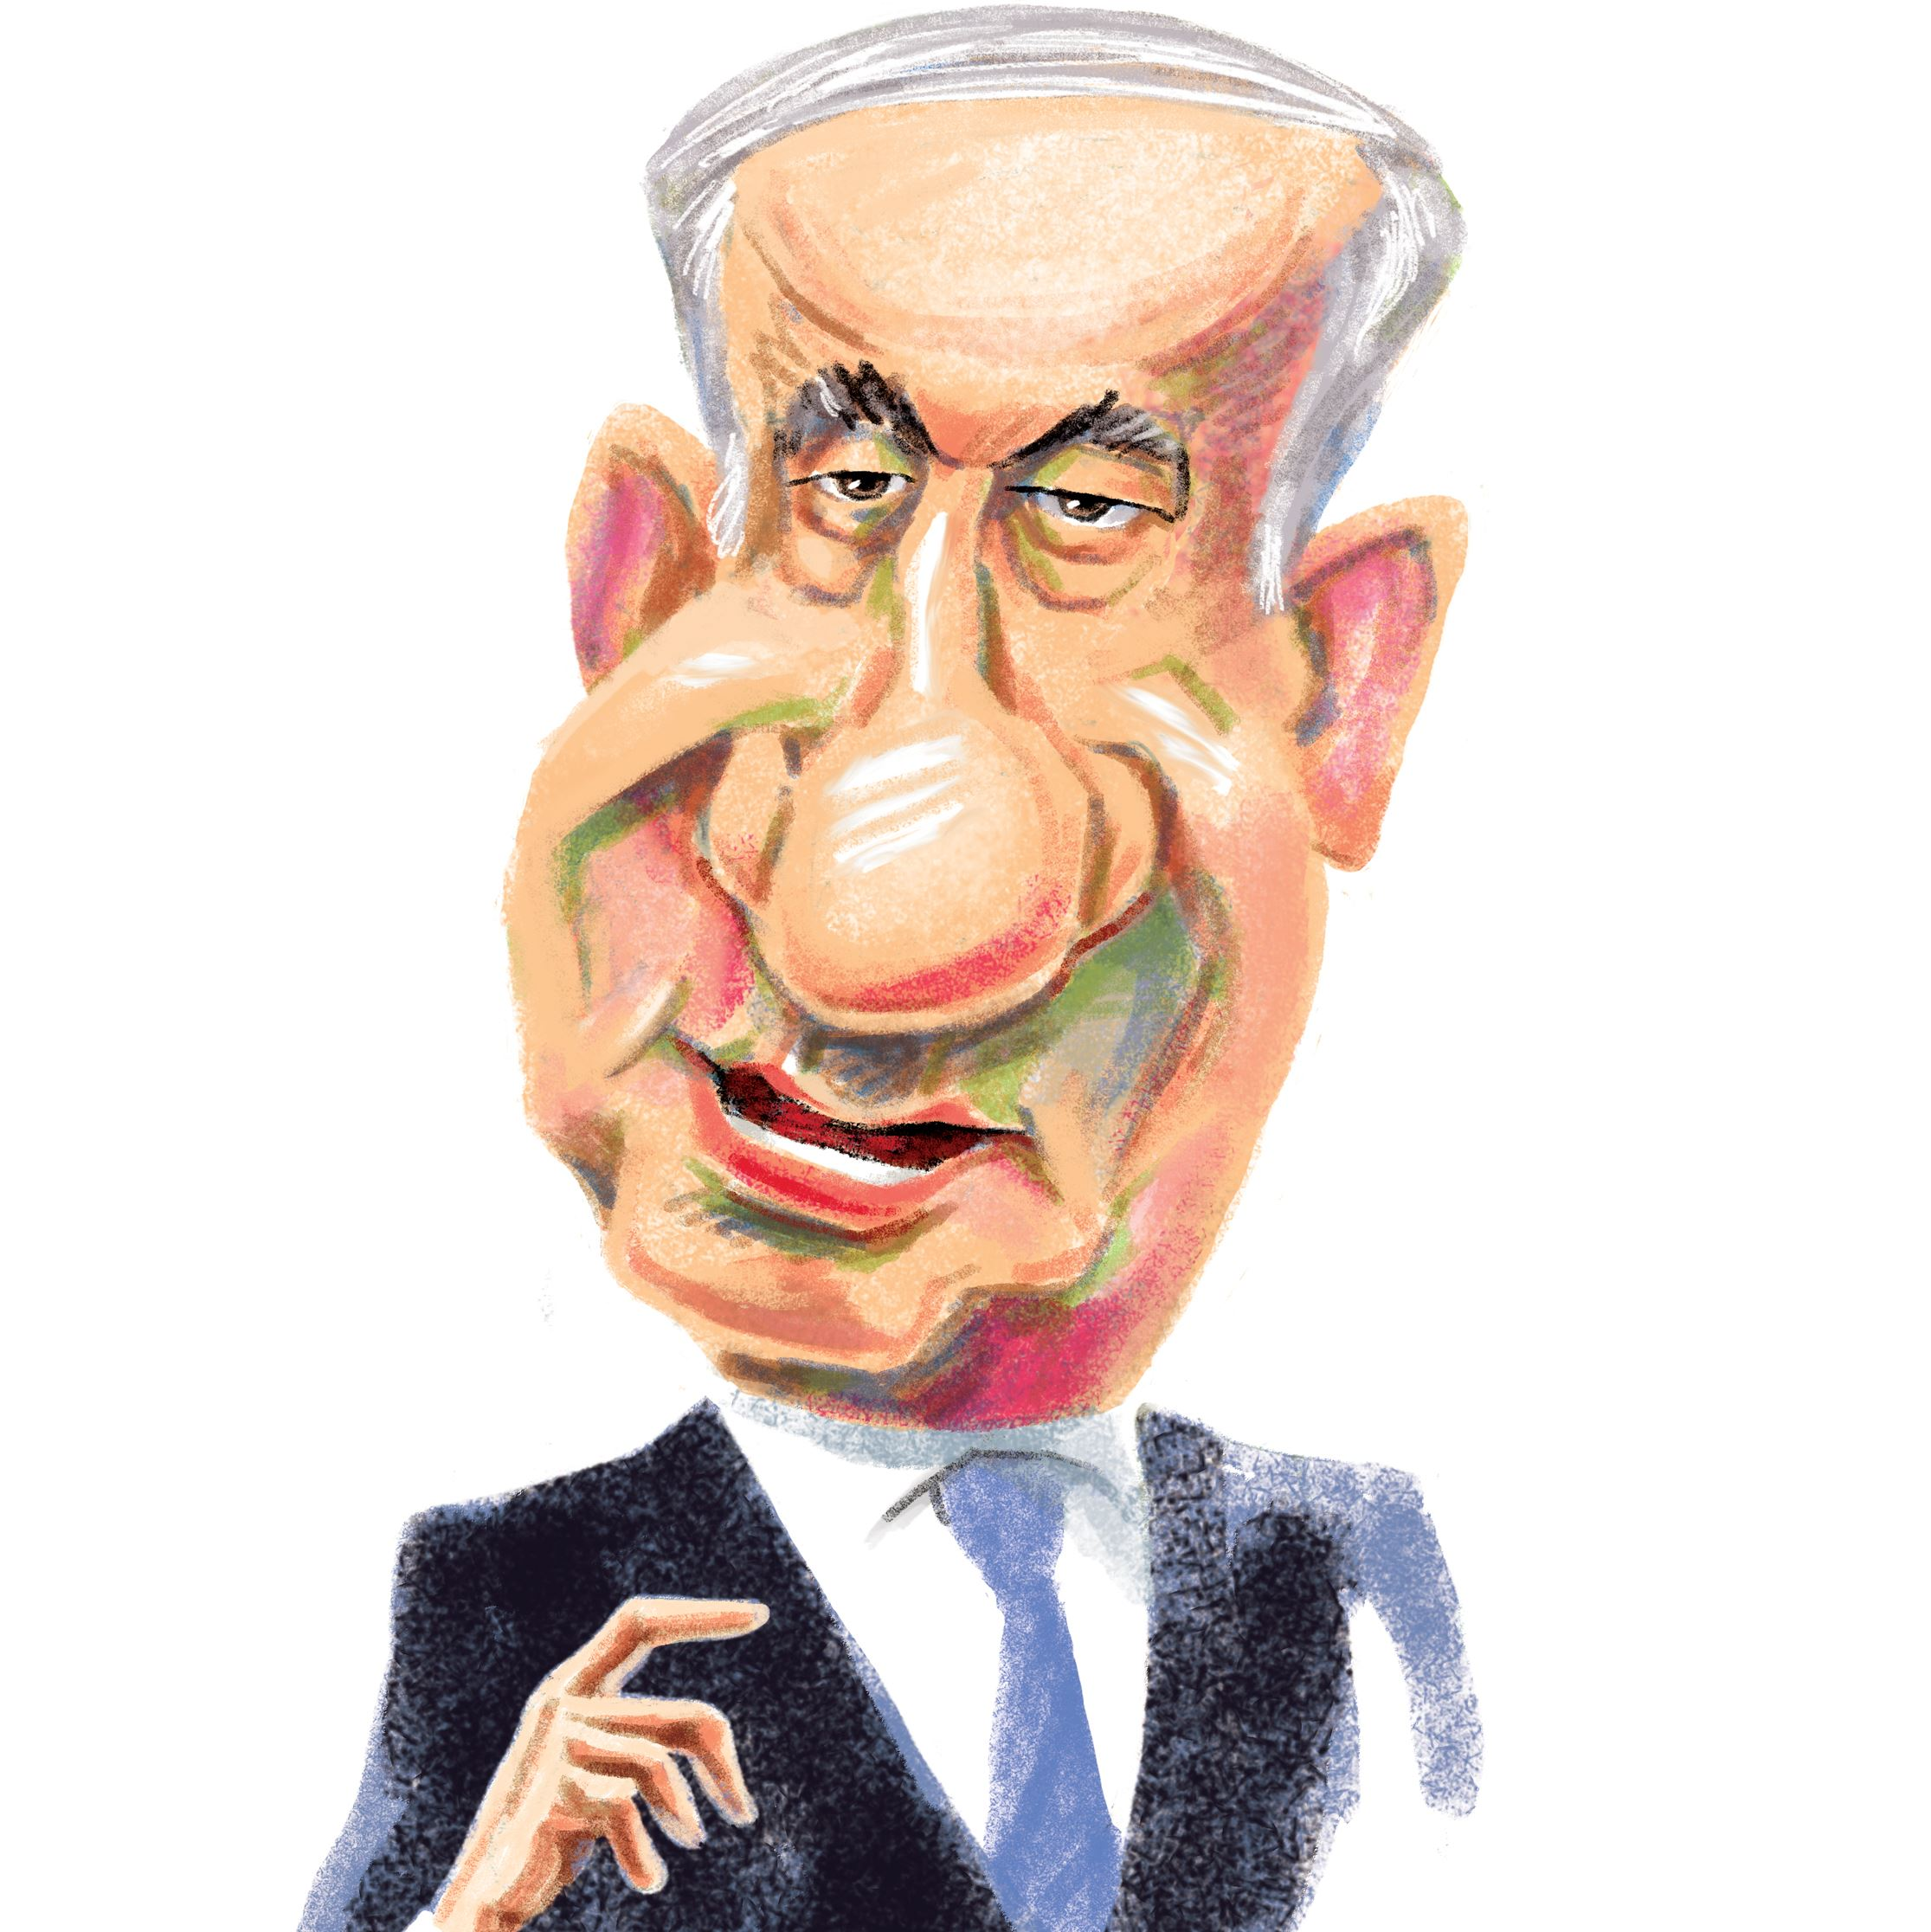 https://i1.wp.com/www.post-gazette.com/image/2015/03/25/ca0,161,2231,2393/Netanyahu-0325.jpg